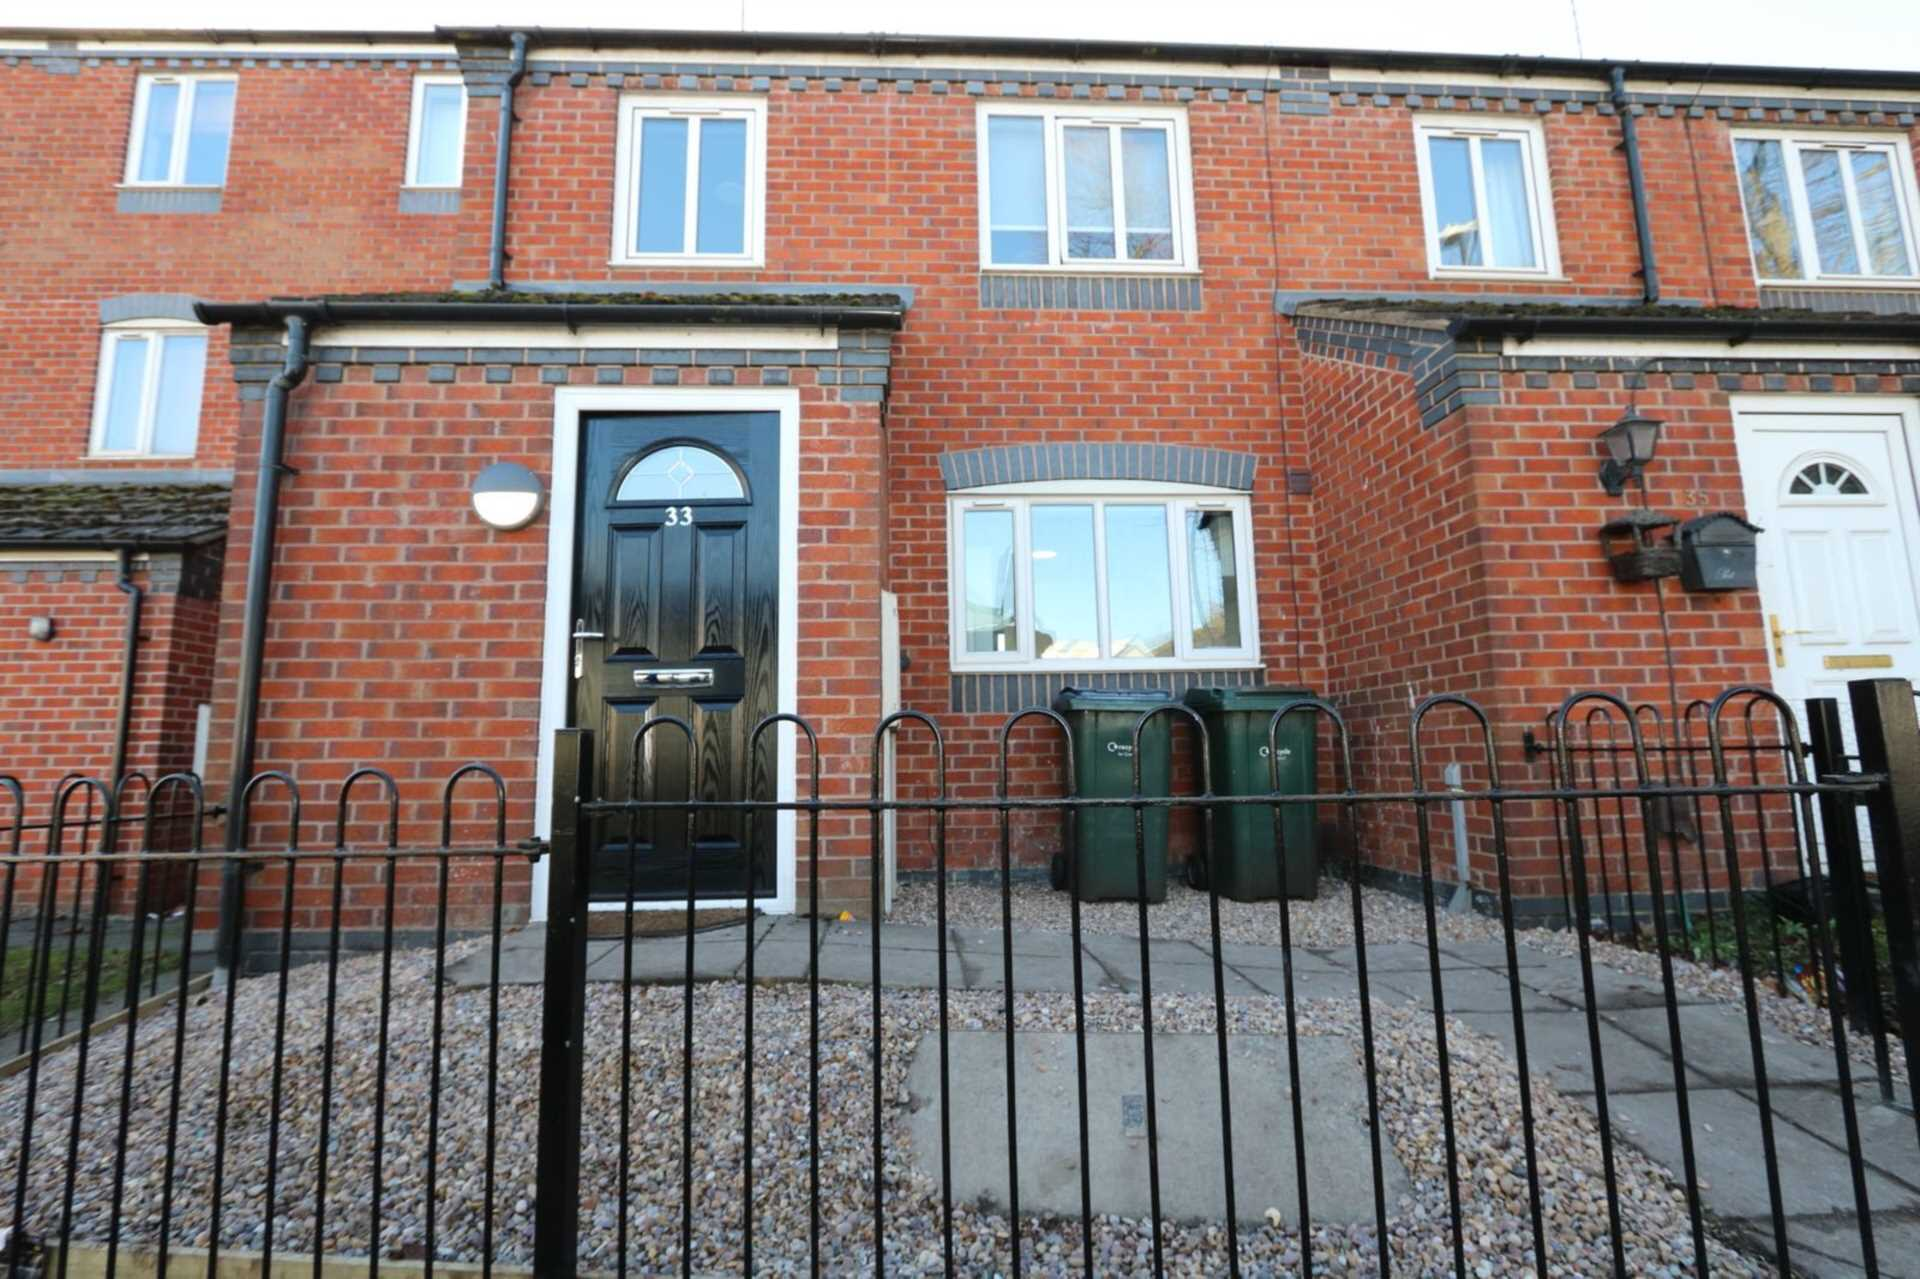 Spon End - 3 bedroom 3 bathroom, student home fully furnished, WIFI & bills included - NO FEES, Image 10